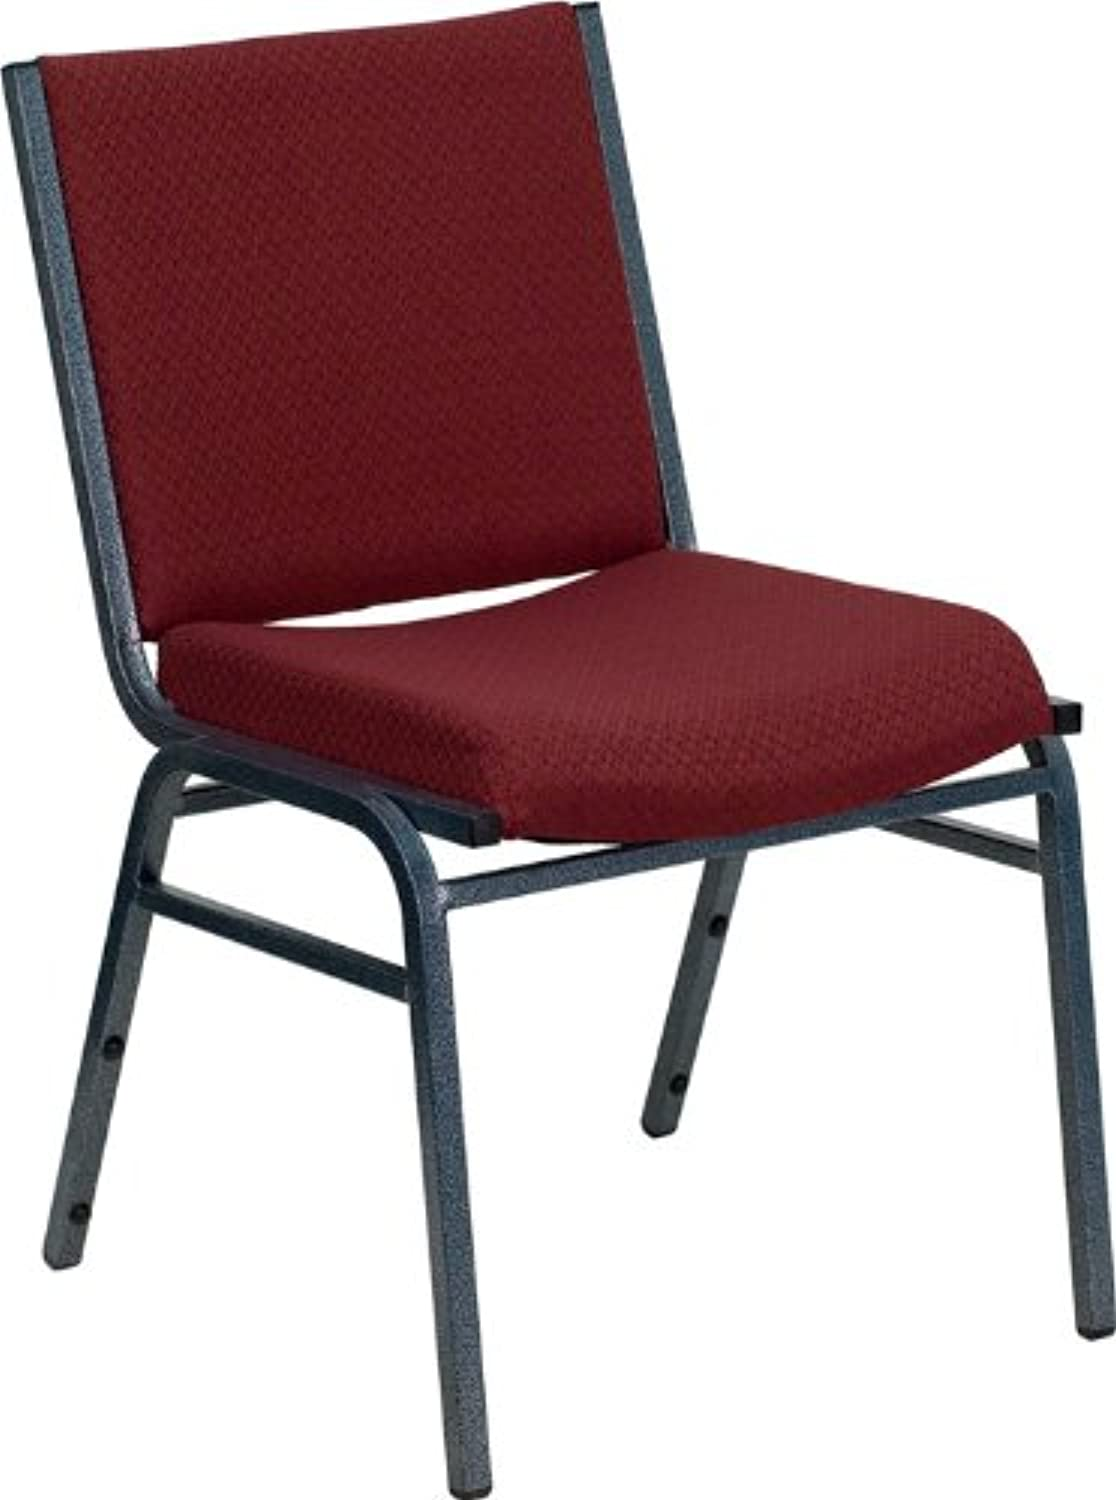 Offex OF-XU-60153-BY-GG Hercules Series Heavy Duty 3-Inch Thickly Padded, Burgundy Patterned Upholstered Stack Chair